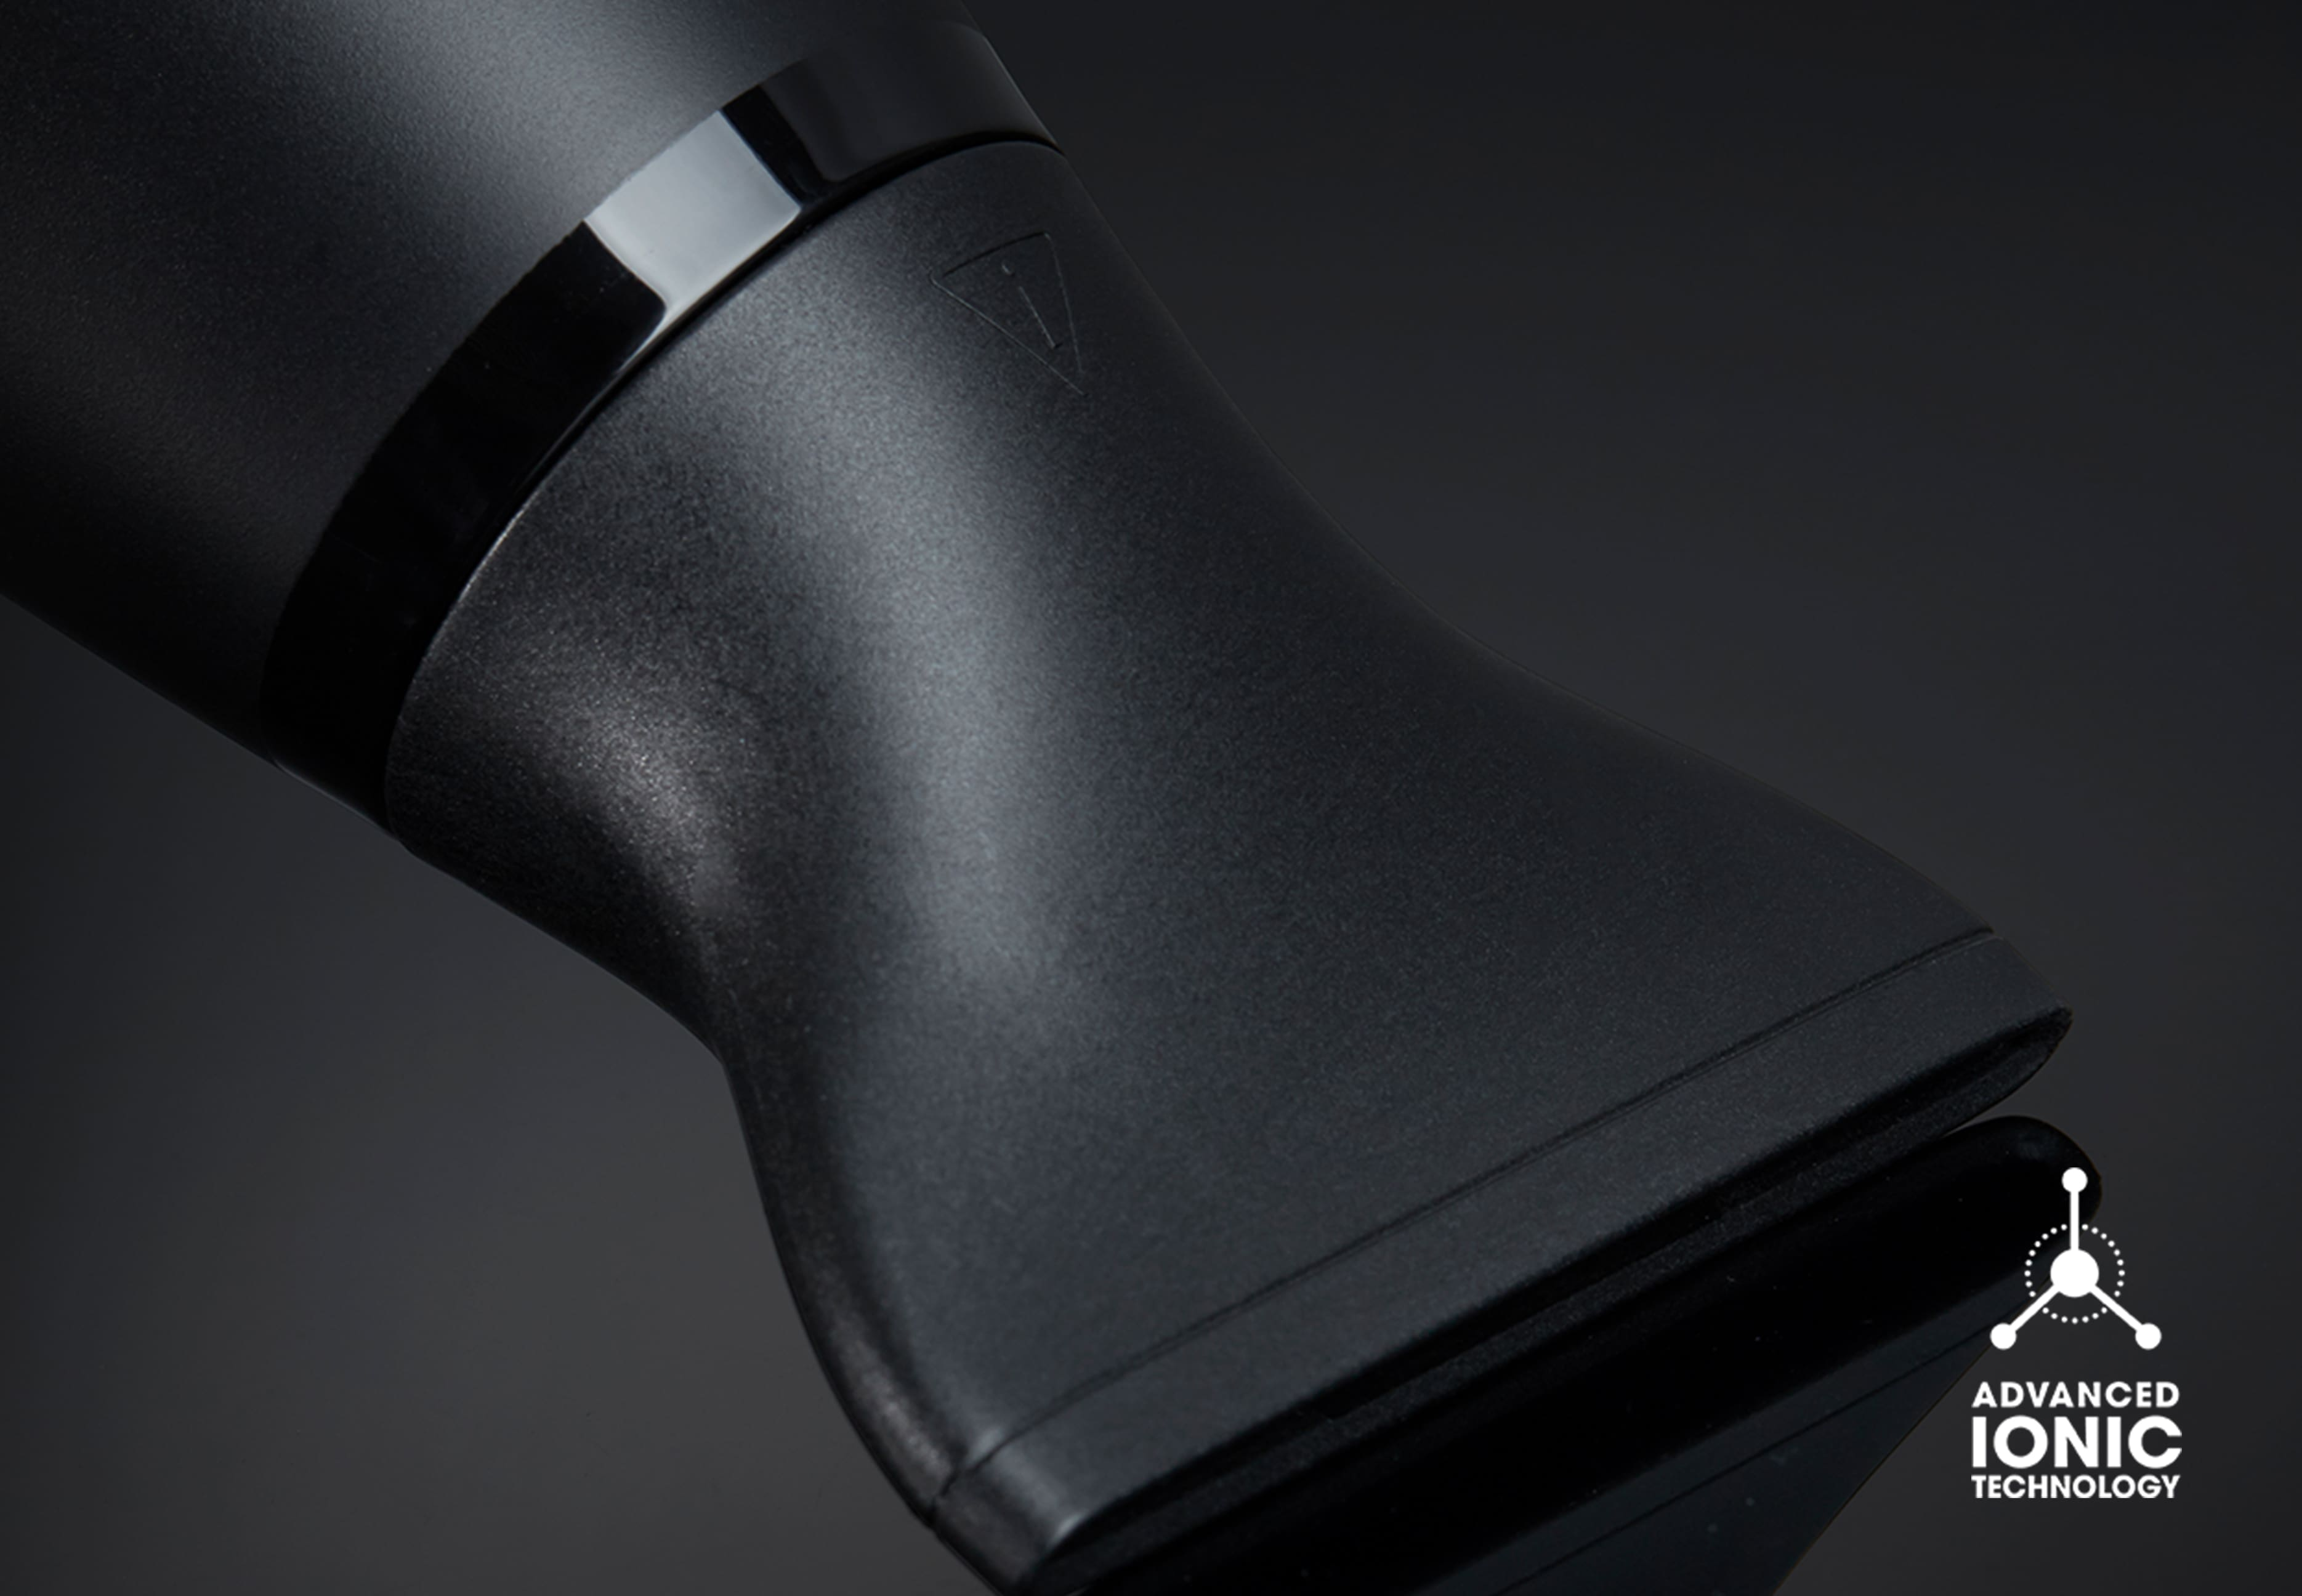 ghd air professional hair dryer nozzle close-up